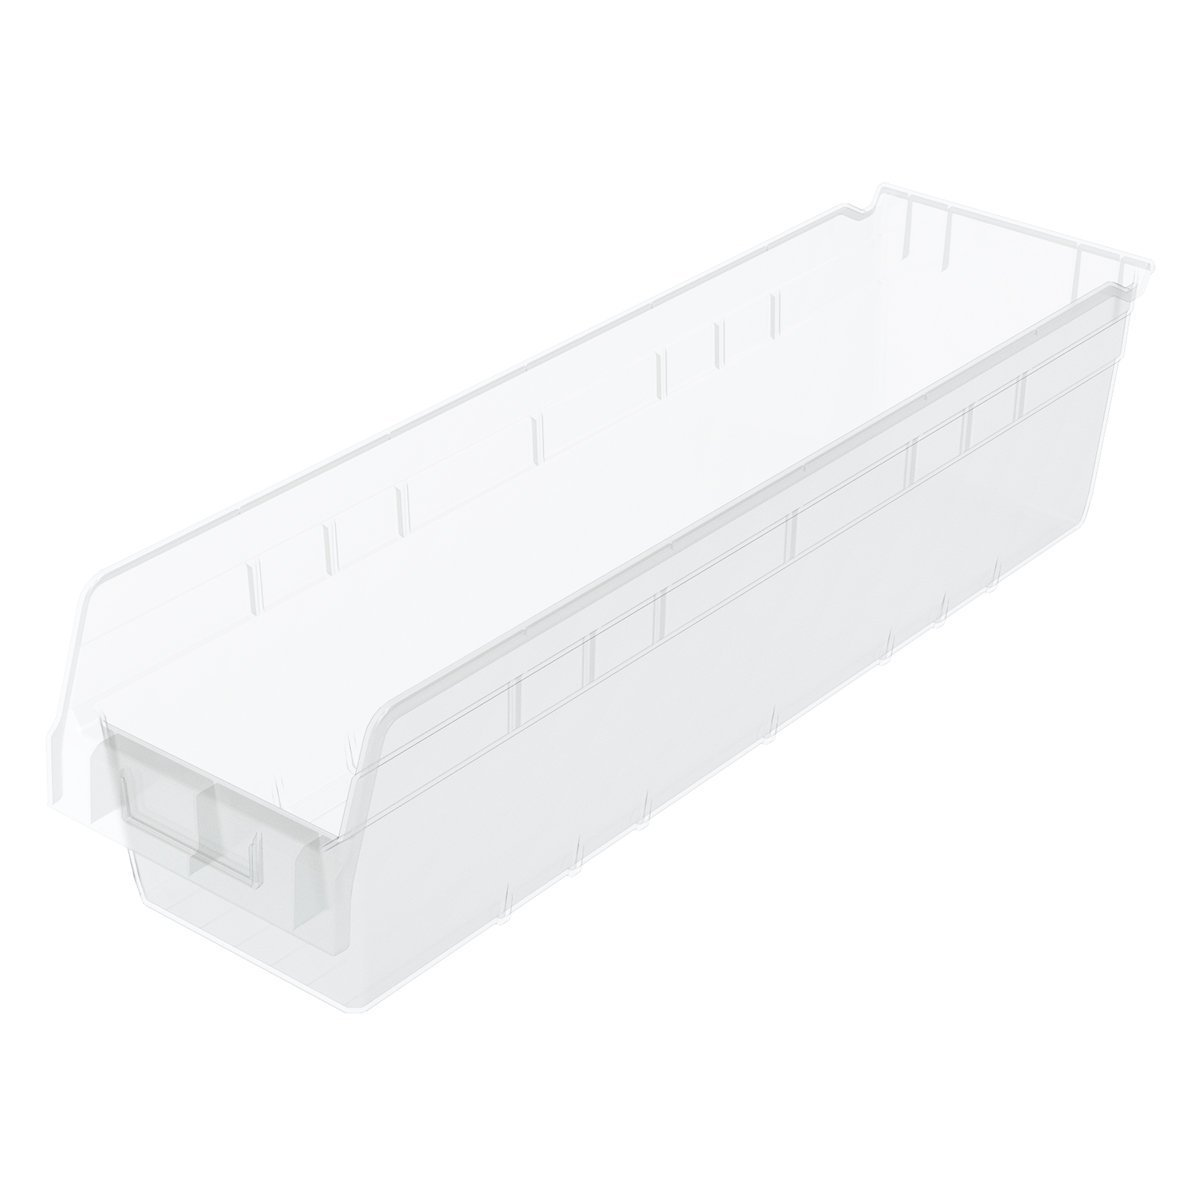 Akro-Mils 30094 24-Inch L by 6.5-Inch W by 6-Inch H Clear ShelfMax Plastic Nesting Shelf Bin Box, 10-Pack